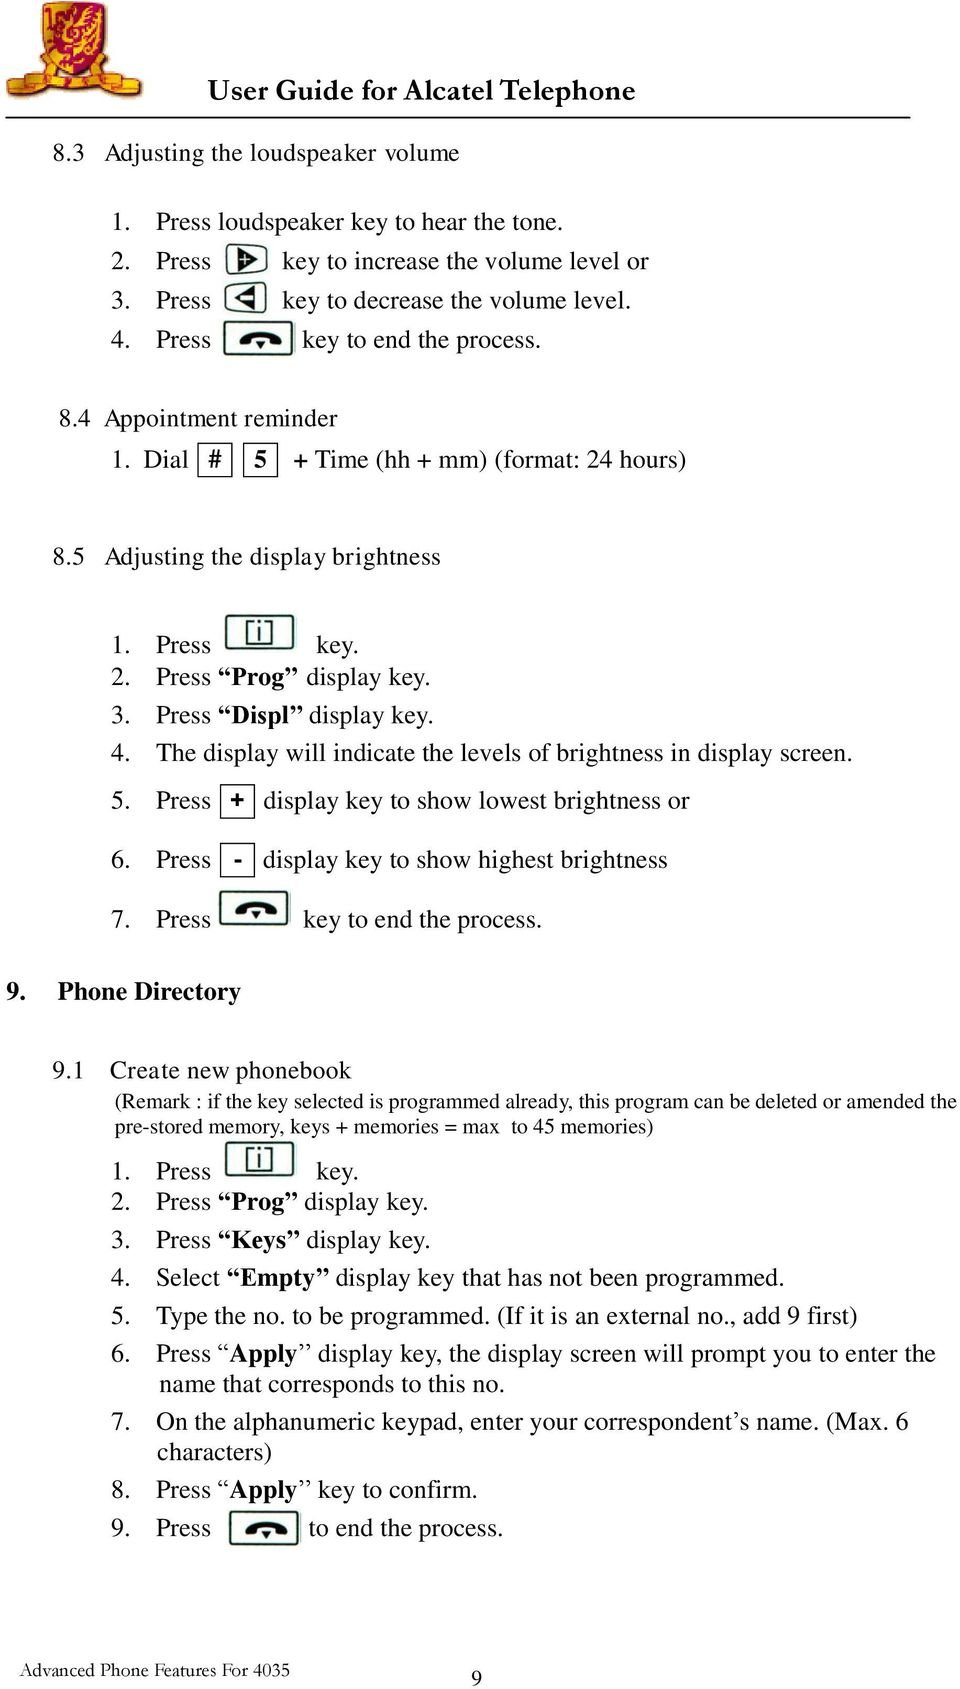 User Guide for Alcatel Telephone Advanced Phone Features For PDF